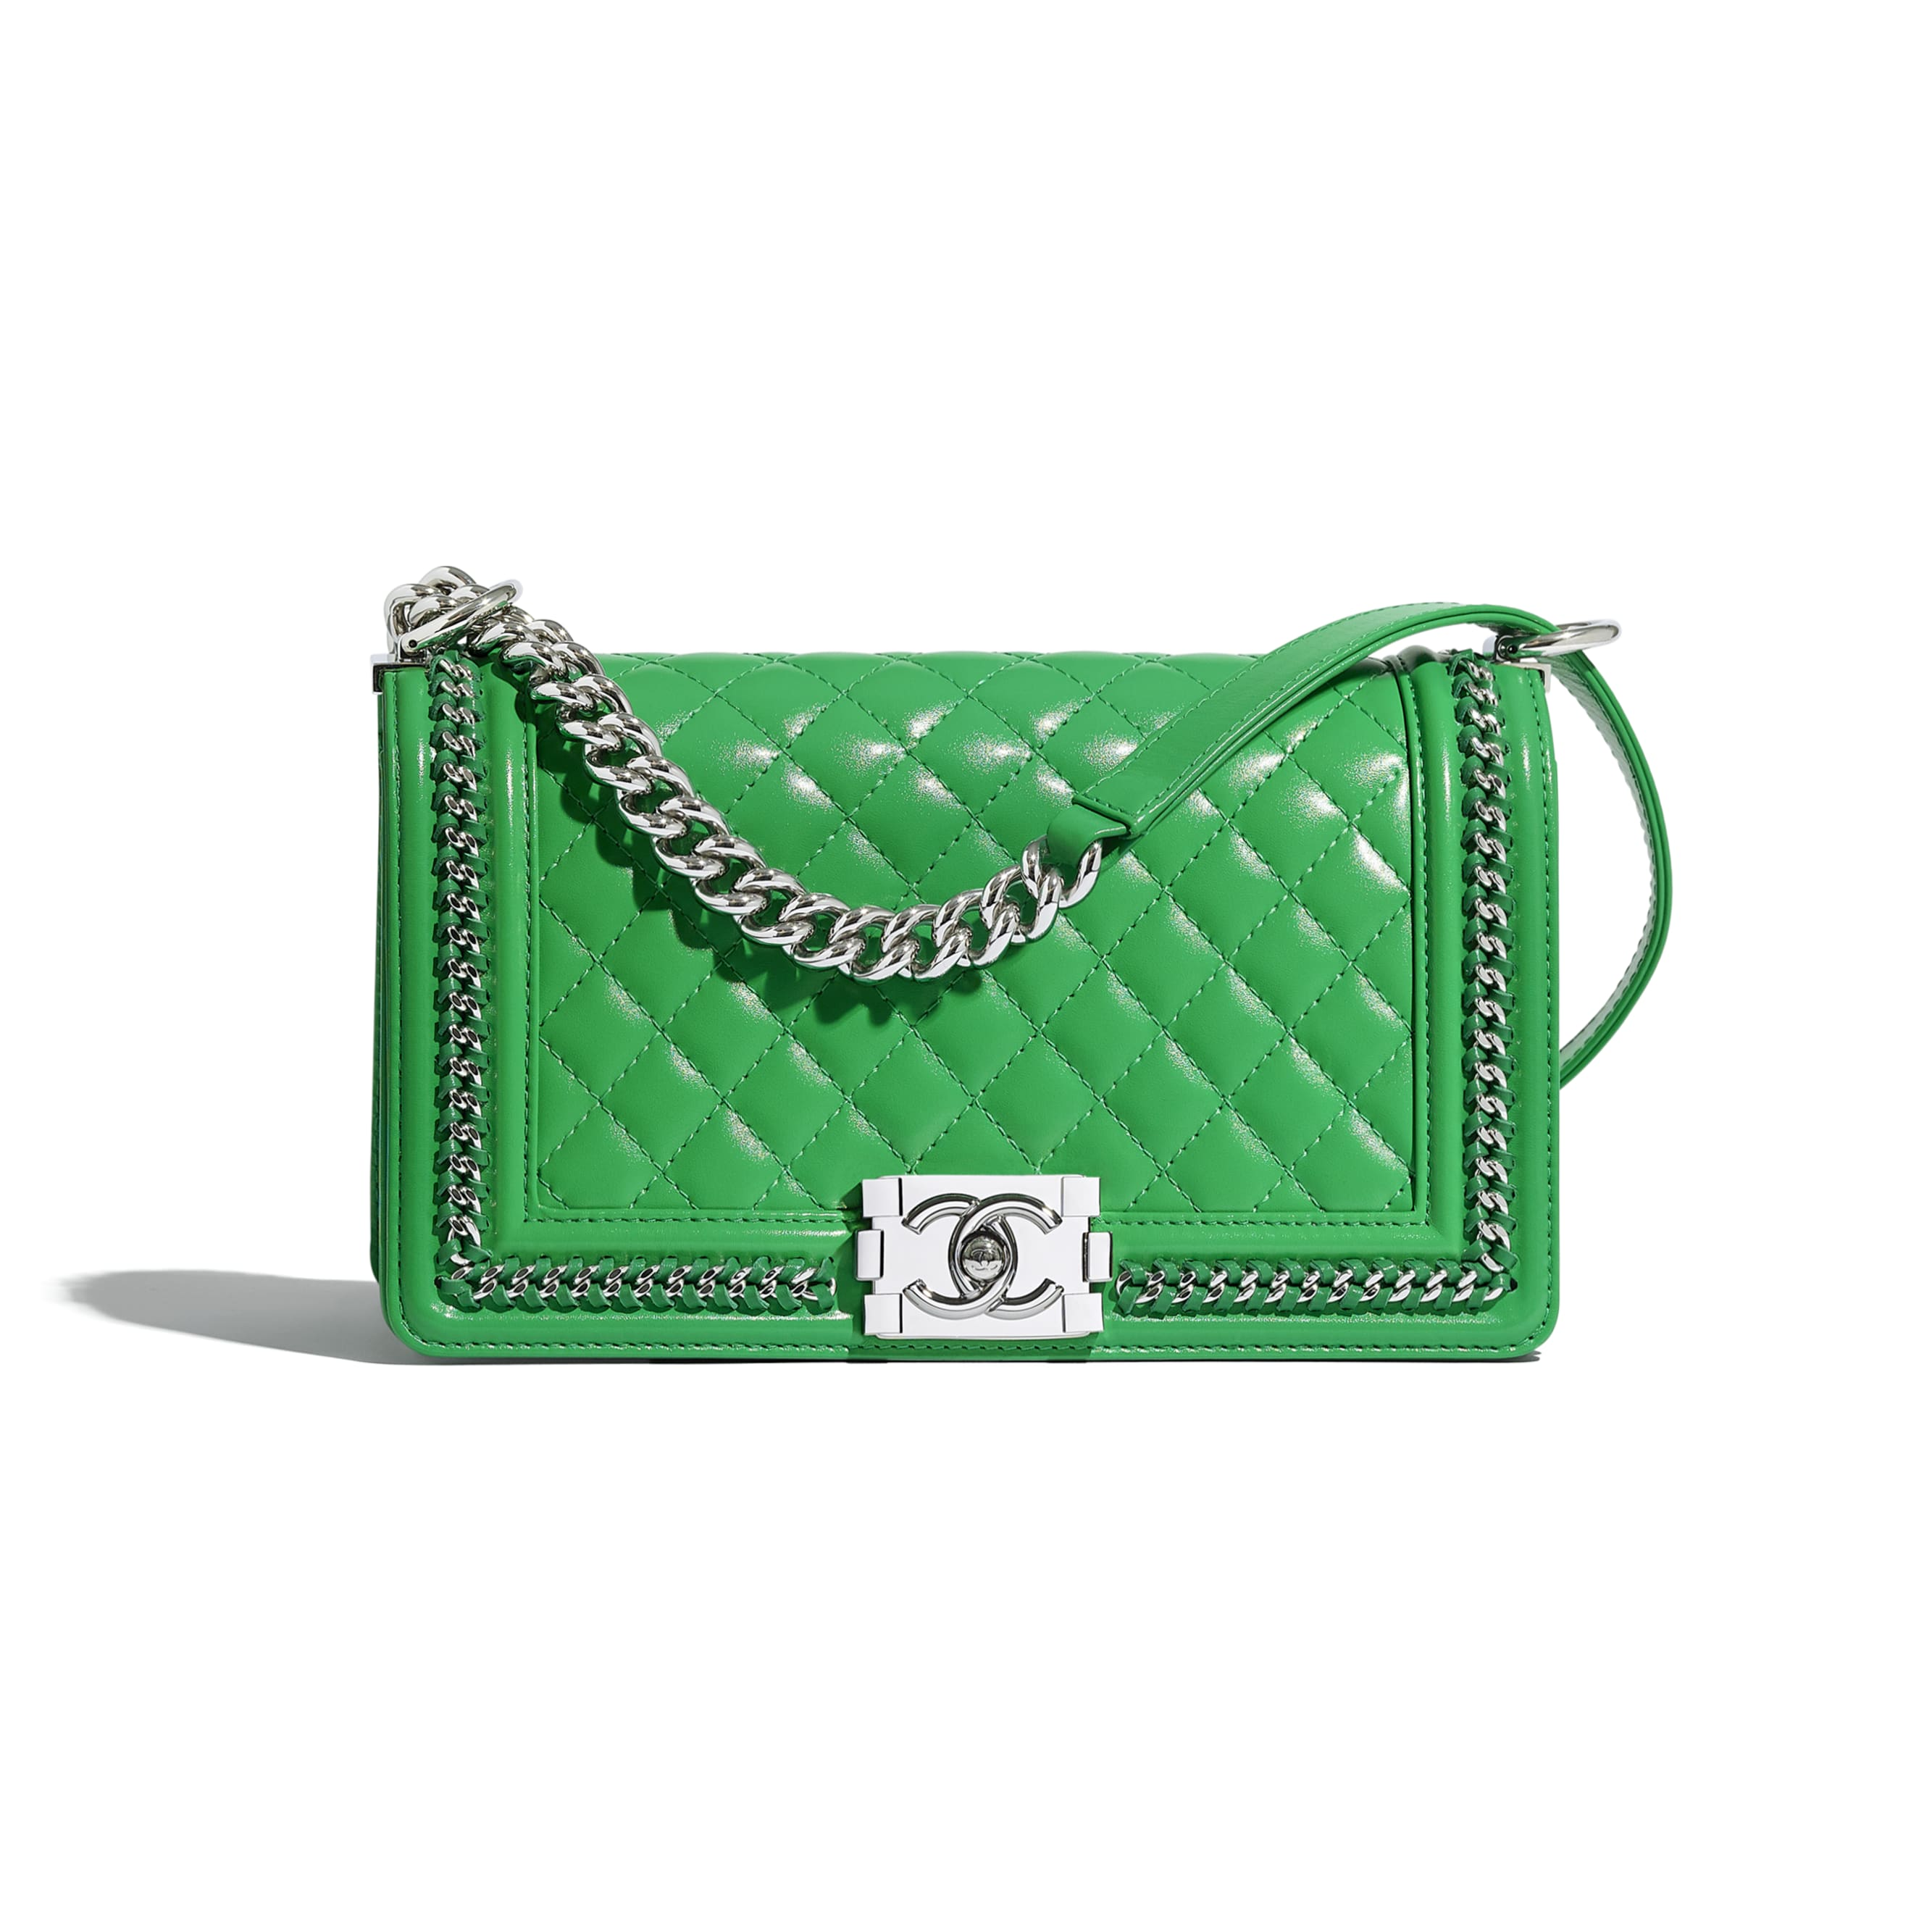 BOY CHANEL Handbag - Green - Calfskin & Gold-Tone Metal - CHANEL - Default view - see standard sized version